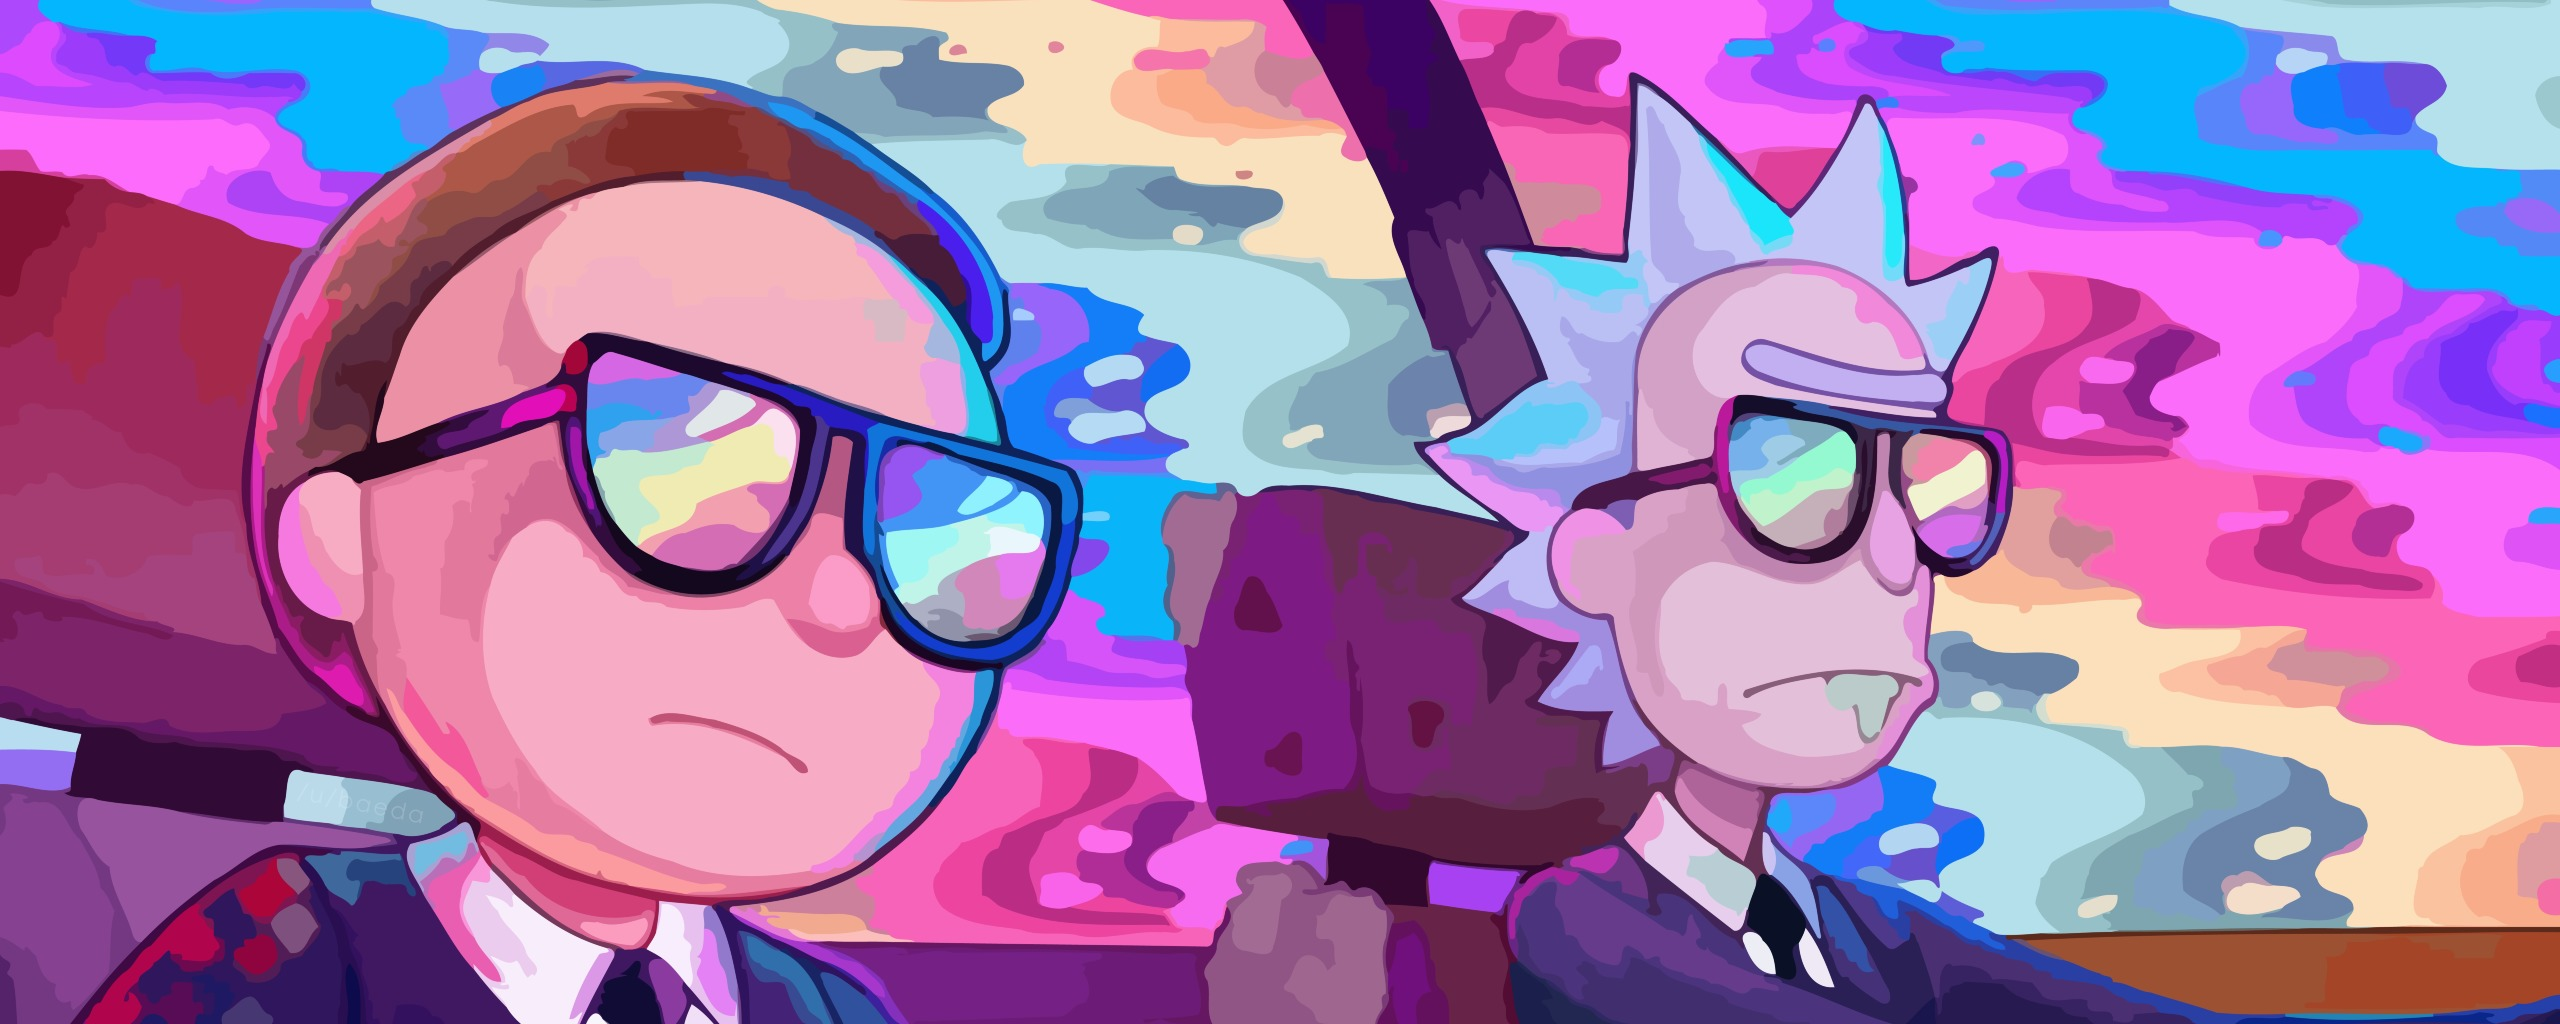 2560x1024 Rick and Morty Oh Mama Run The Jewels 2560x1024 ...